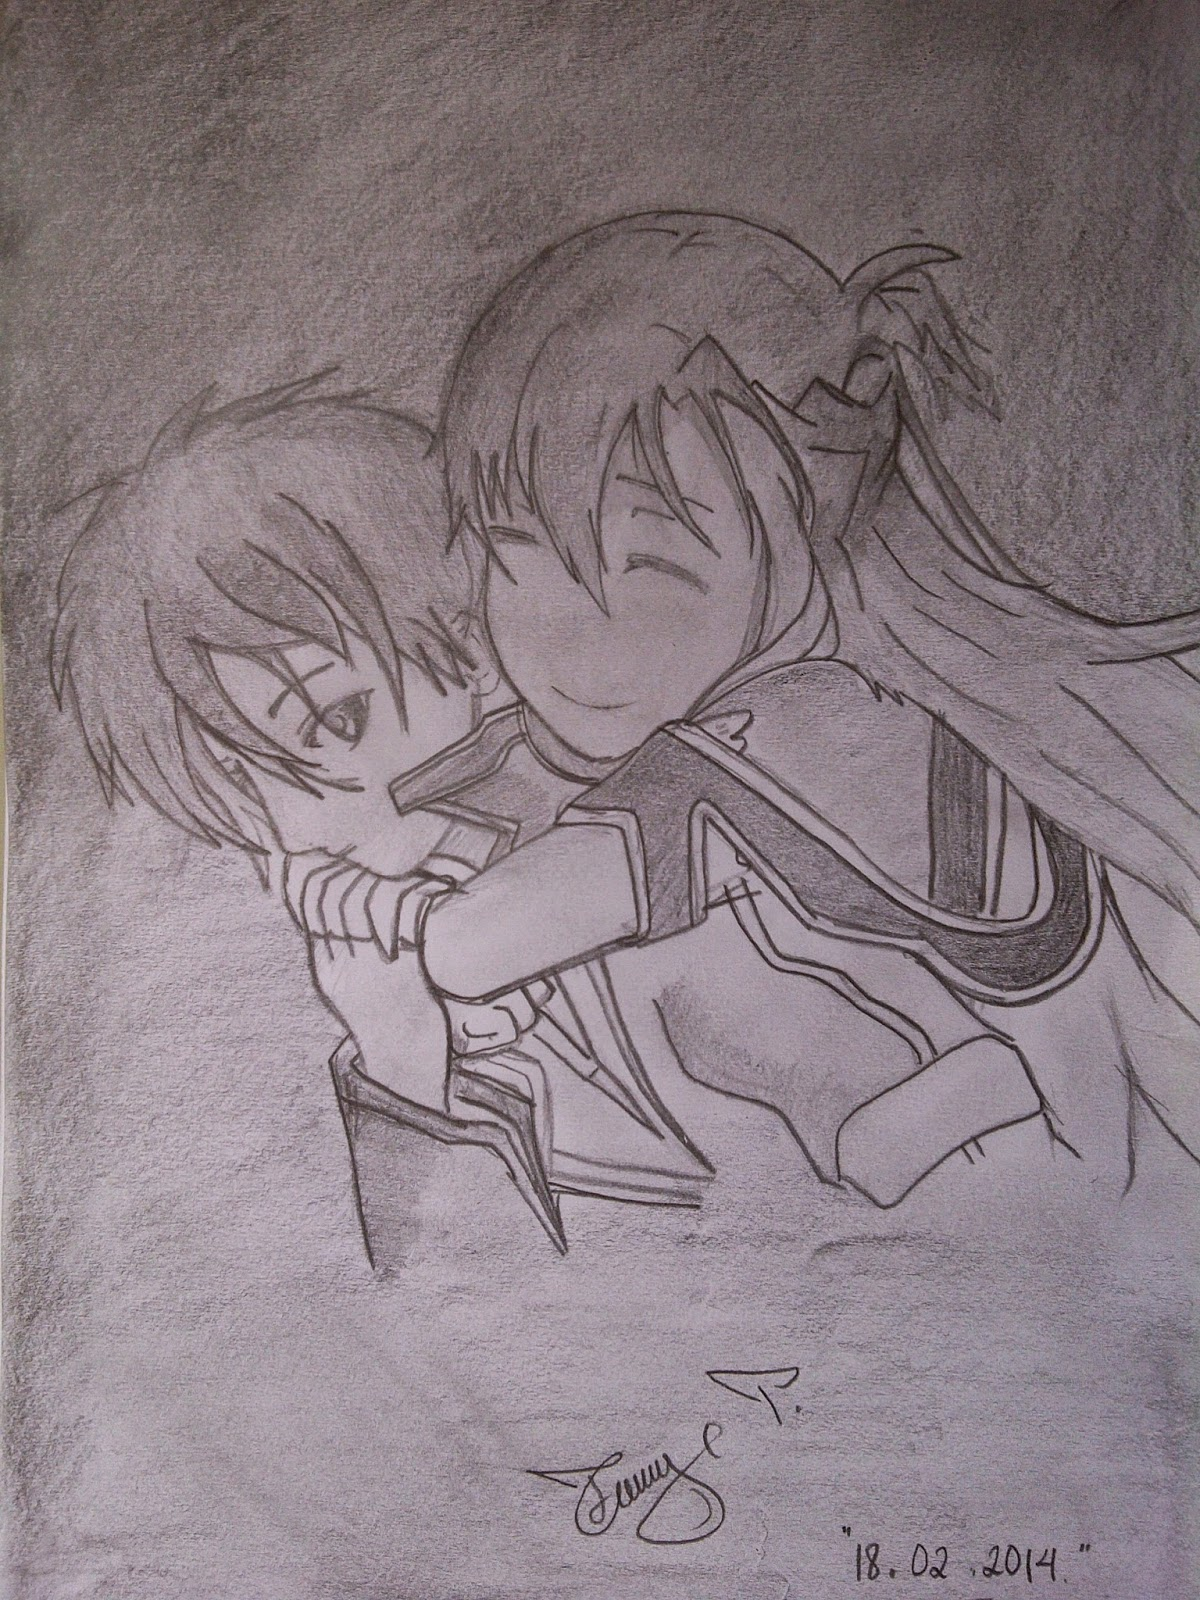 Imagean pensil anime couple islami pencil sketch